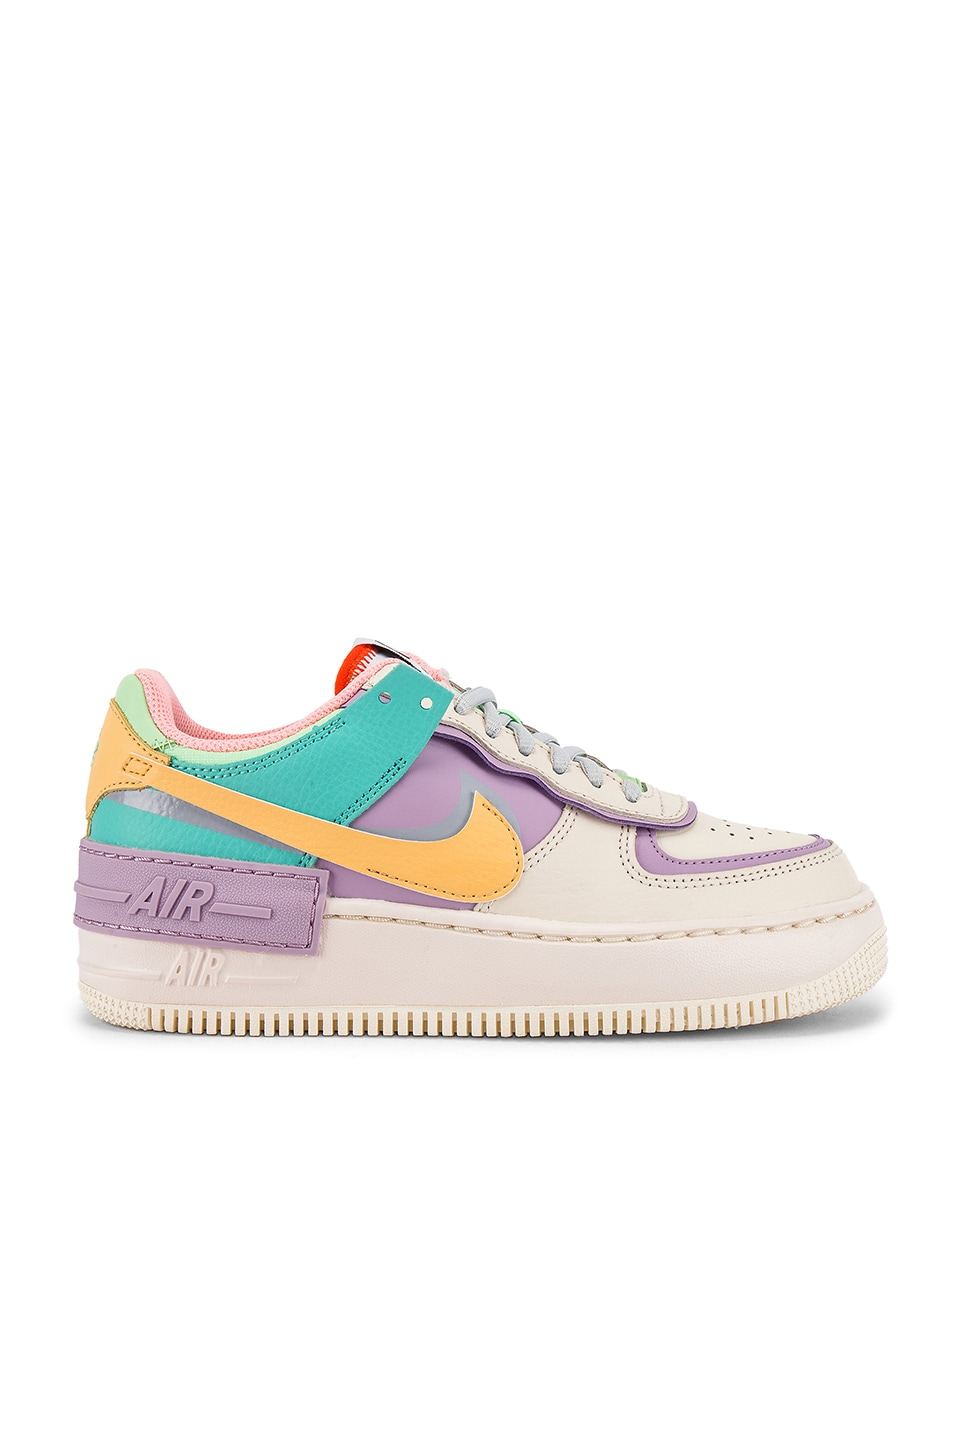 NIKE AIR FORCE 1 AF1 W Shadow Pastel Pale Ivory Pink Purple